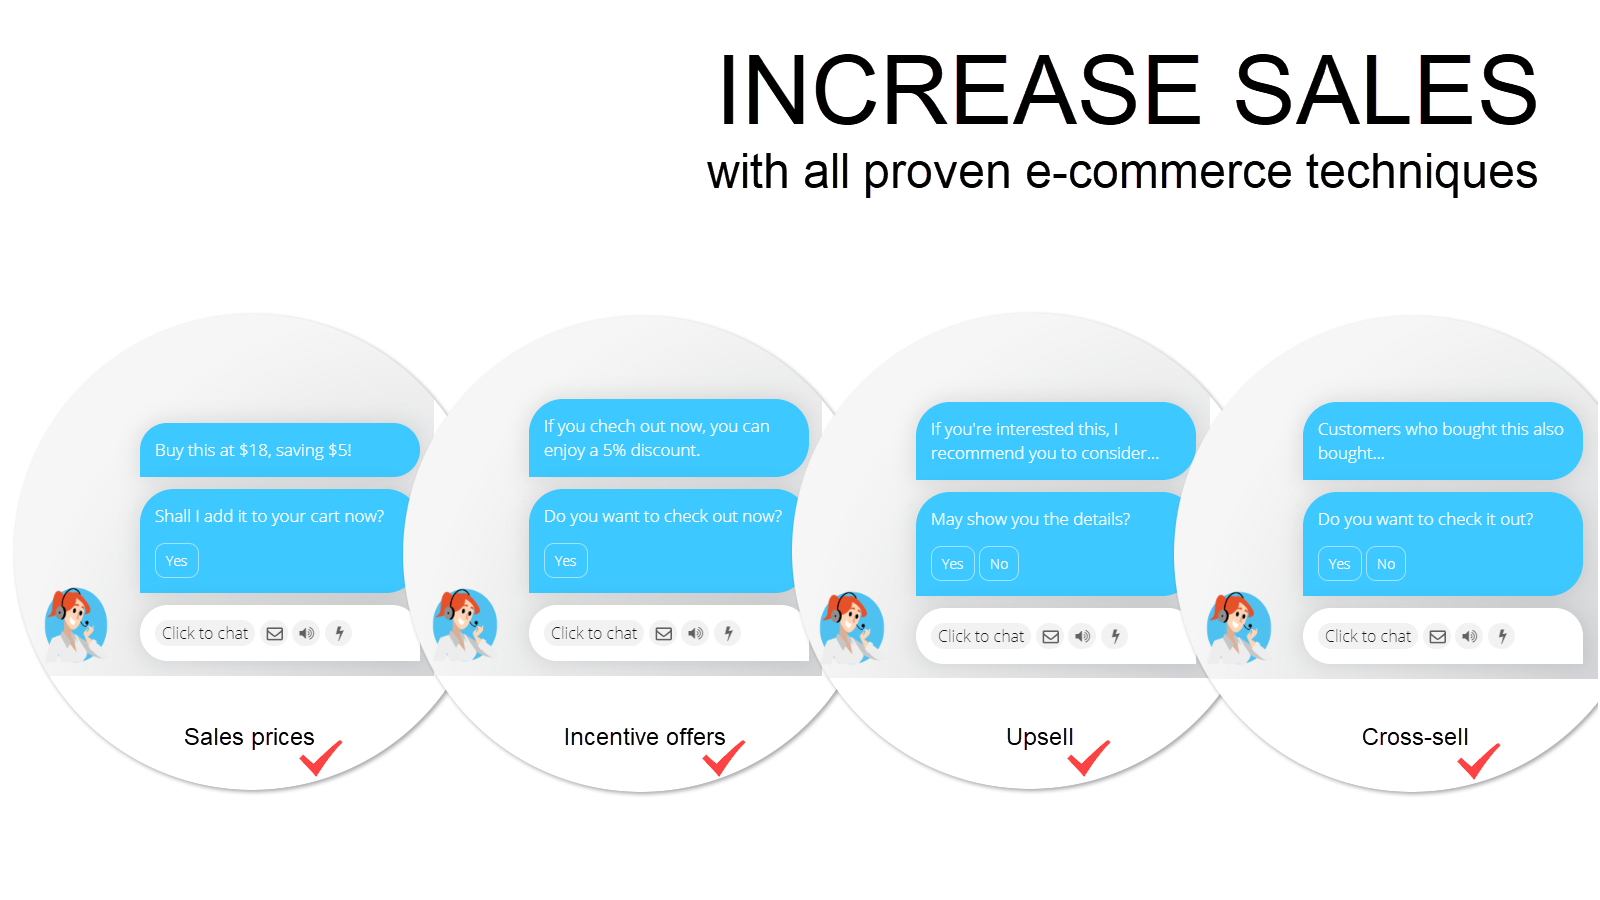 Increase sales with all proven e-commerce techniques